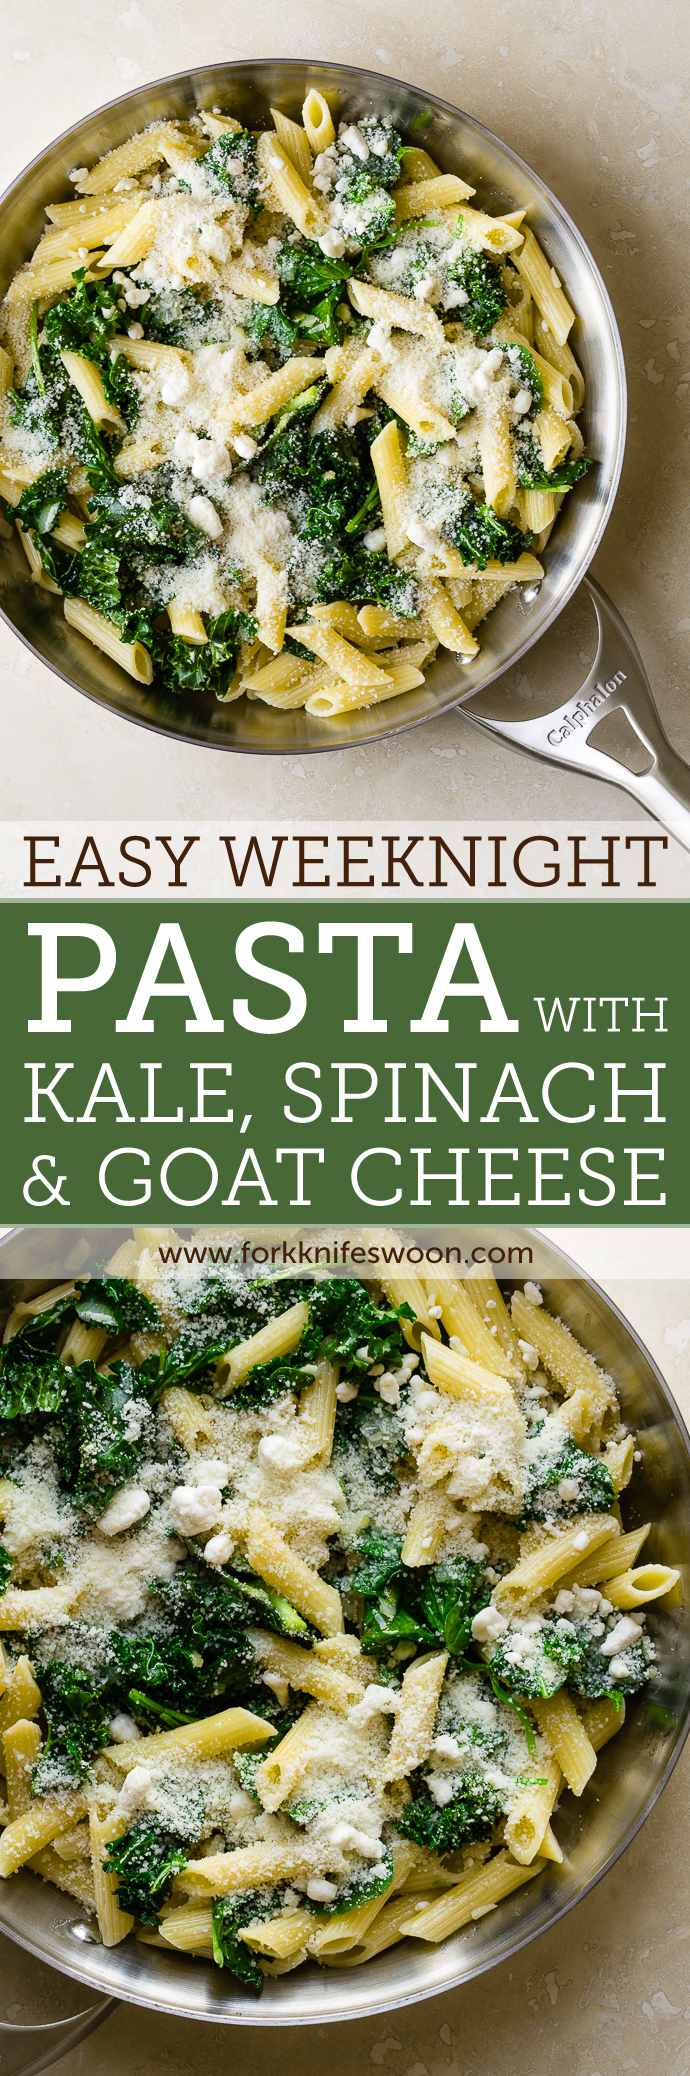 Easy Weeknight Pasta with Spinach, Kale and Goat Cheese | Fork Knife Swoon @forkknifeswoon